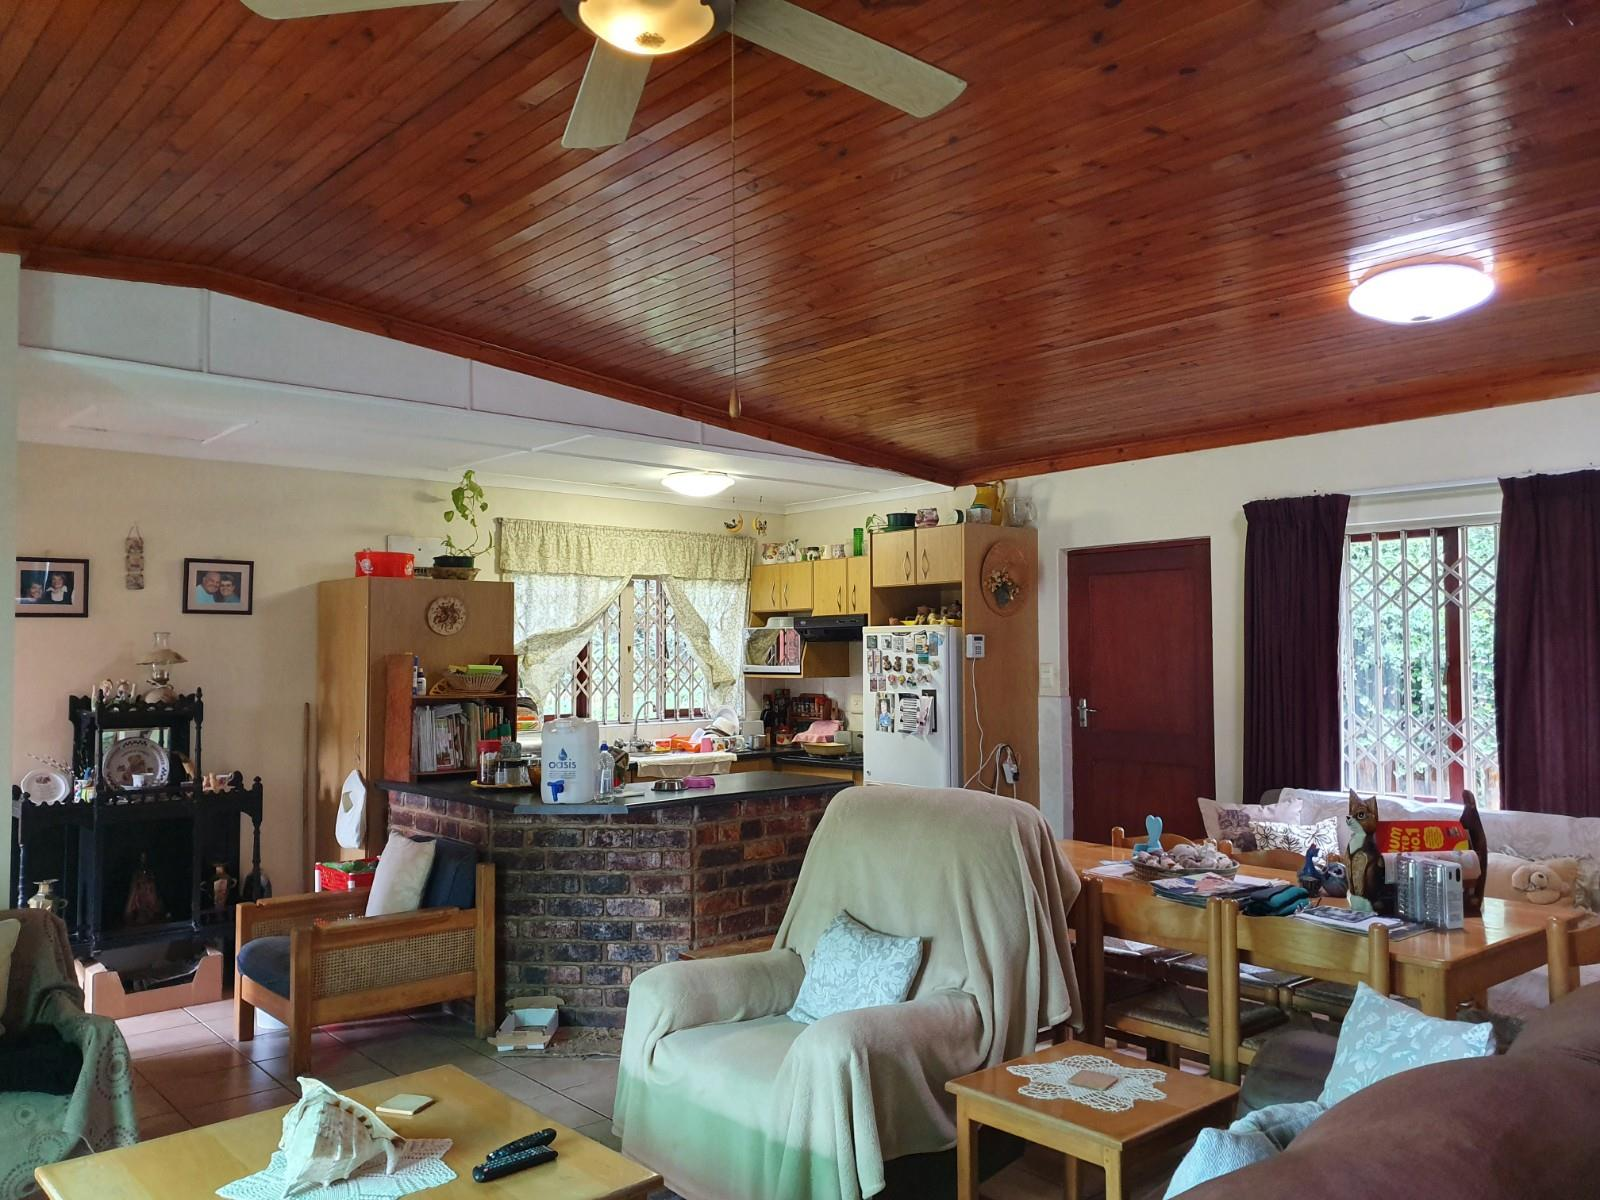 3 Bedroom House For Sale in The Island